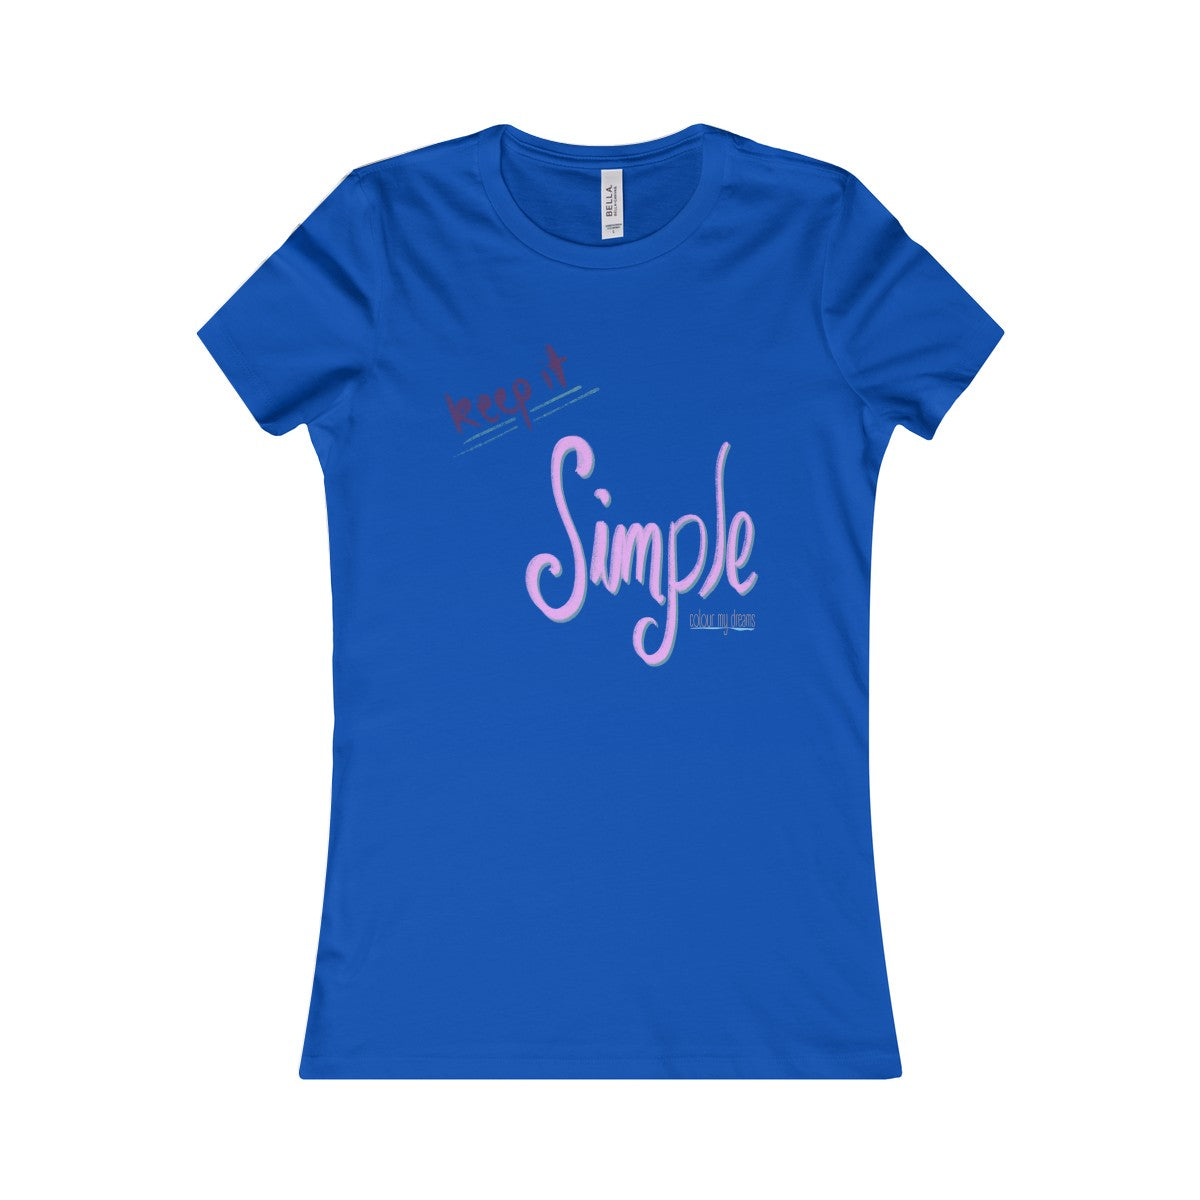 Women's Favourite T-Shirt - Keep It Simple